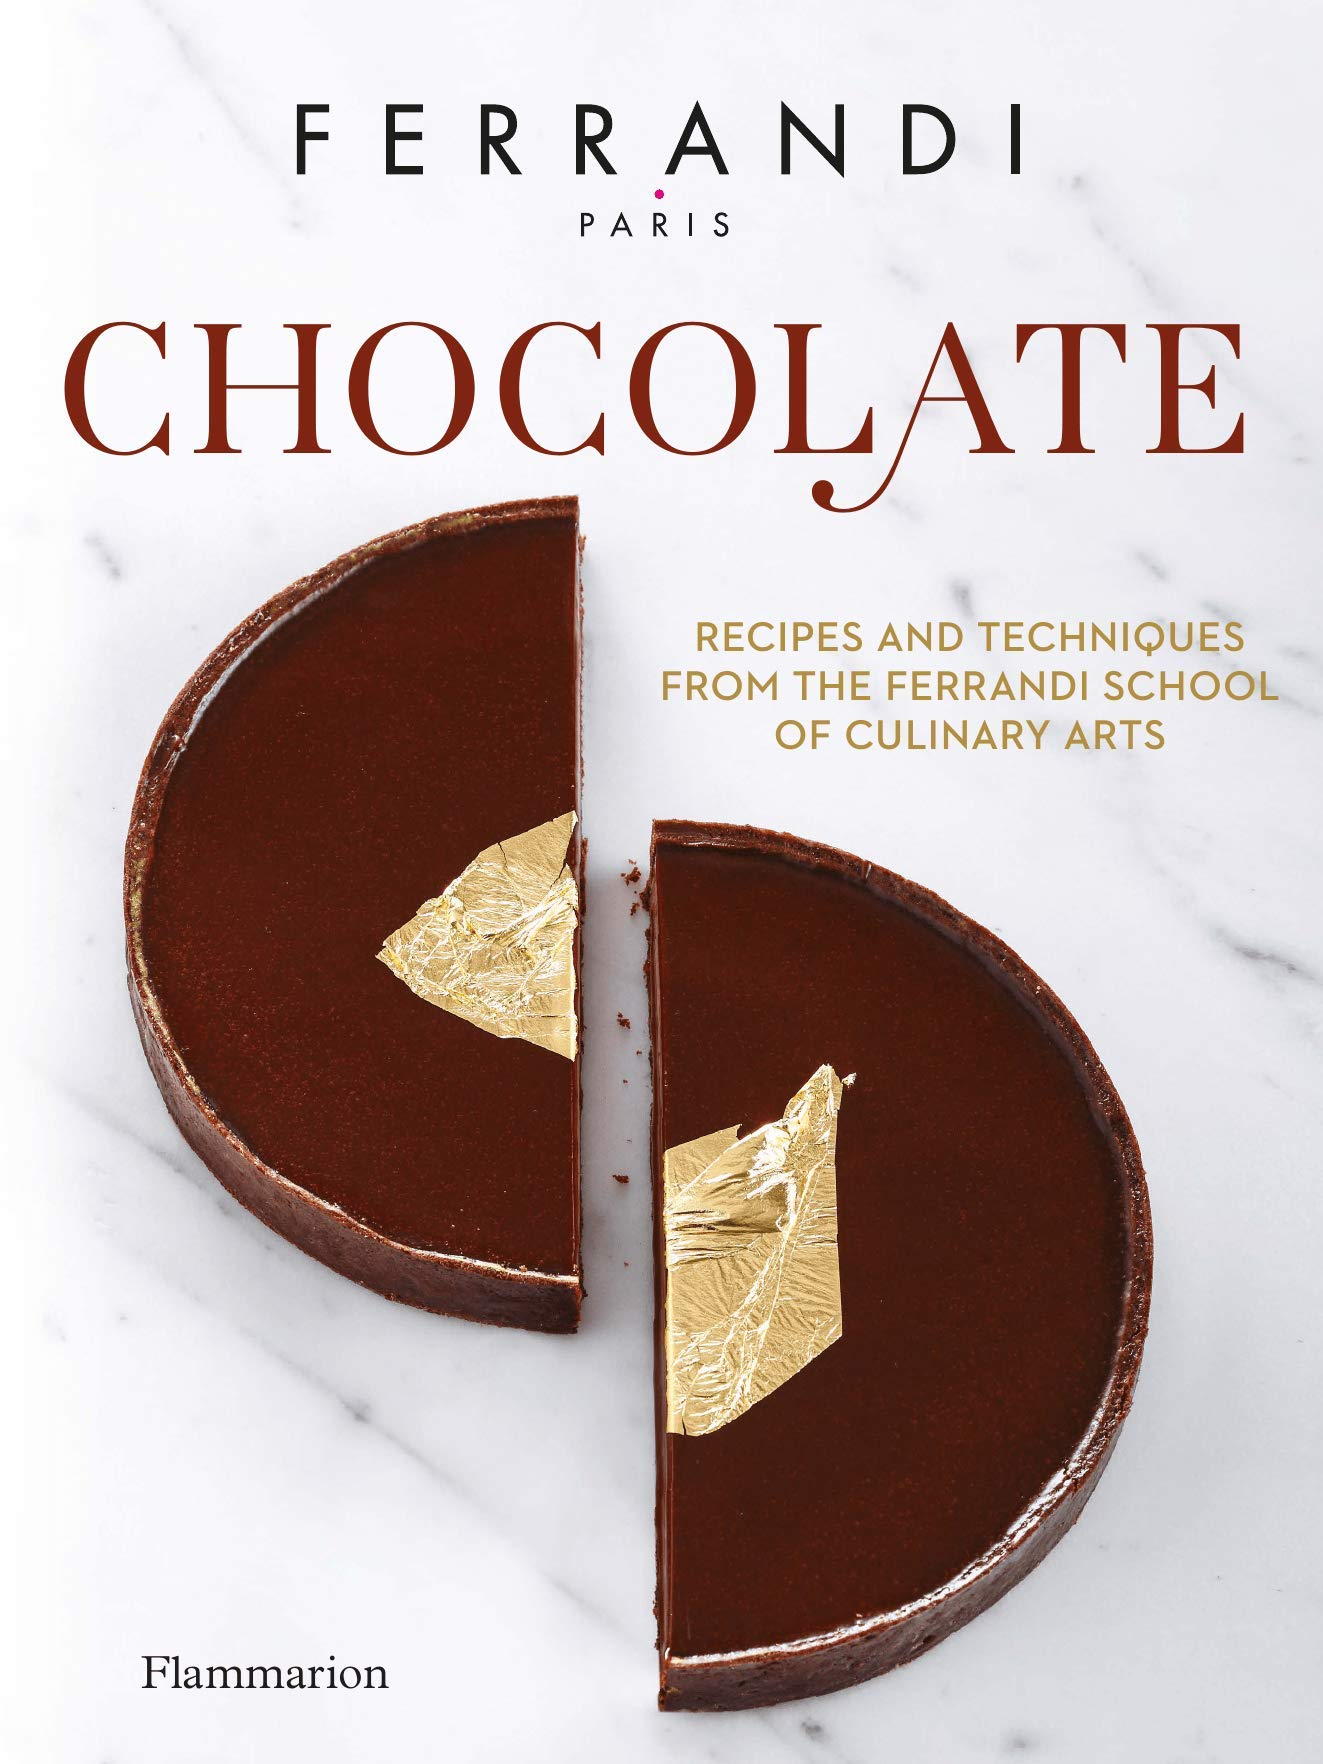 Ferrandi Chocolate  Recipes And Techniques From The Ferrandi School Of Culinary Arts  PRATIQUE   LANG   English Edition